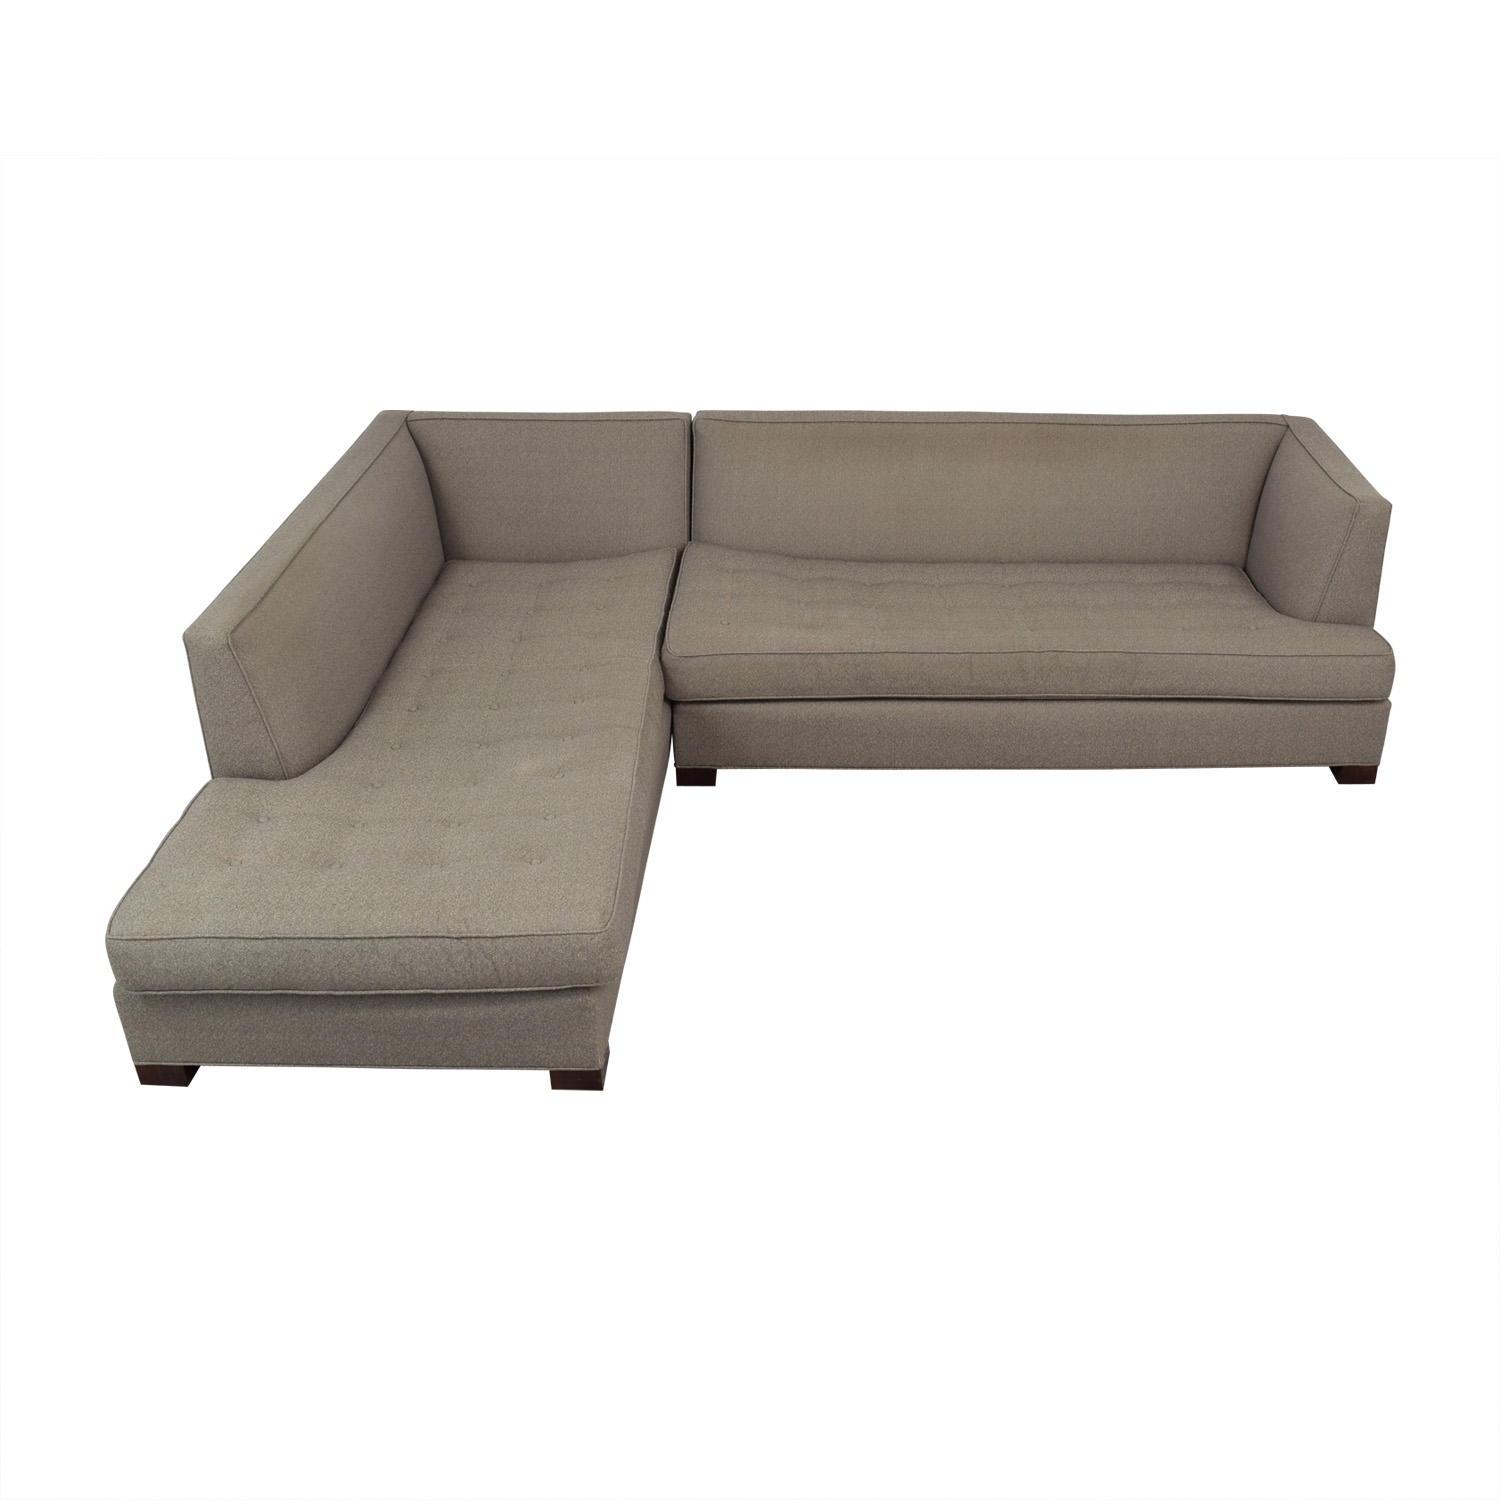 Mitchell Gold + Bob Williams Mitchell Gold + Bob Williams Beige Tufted Chaise Sectional coupon